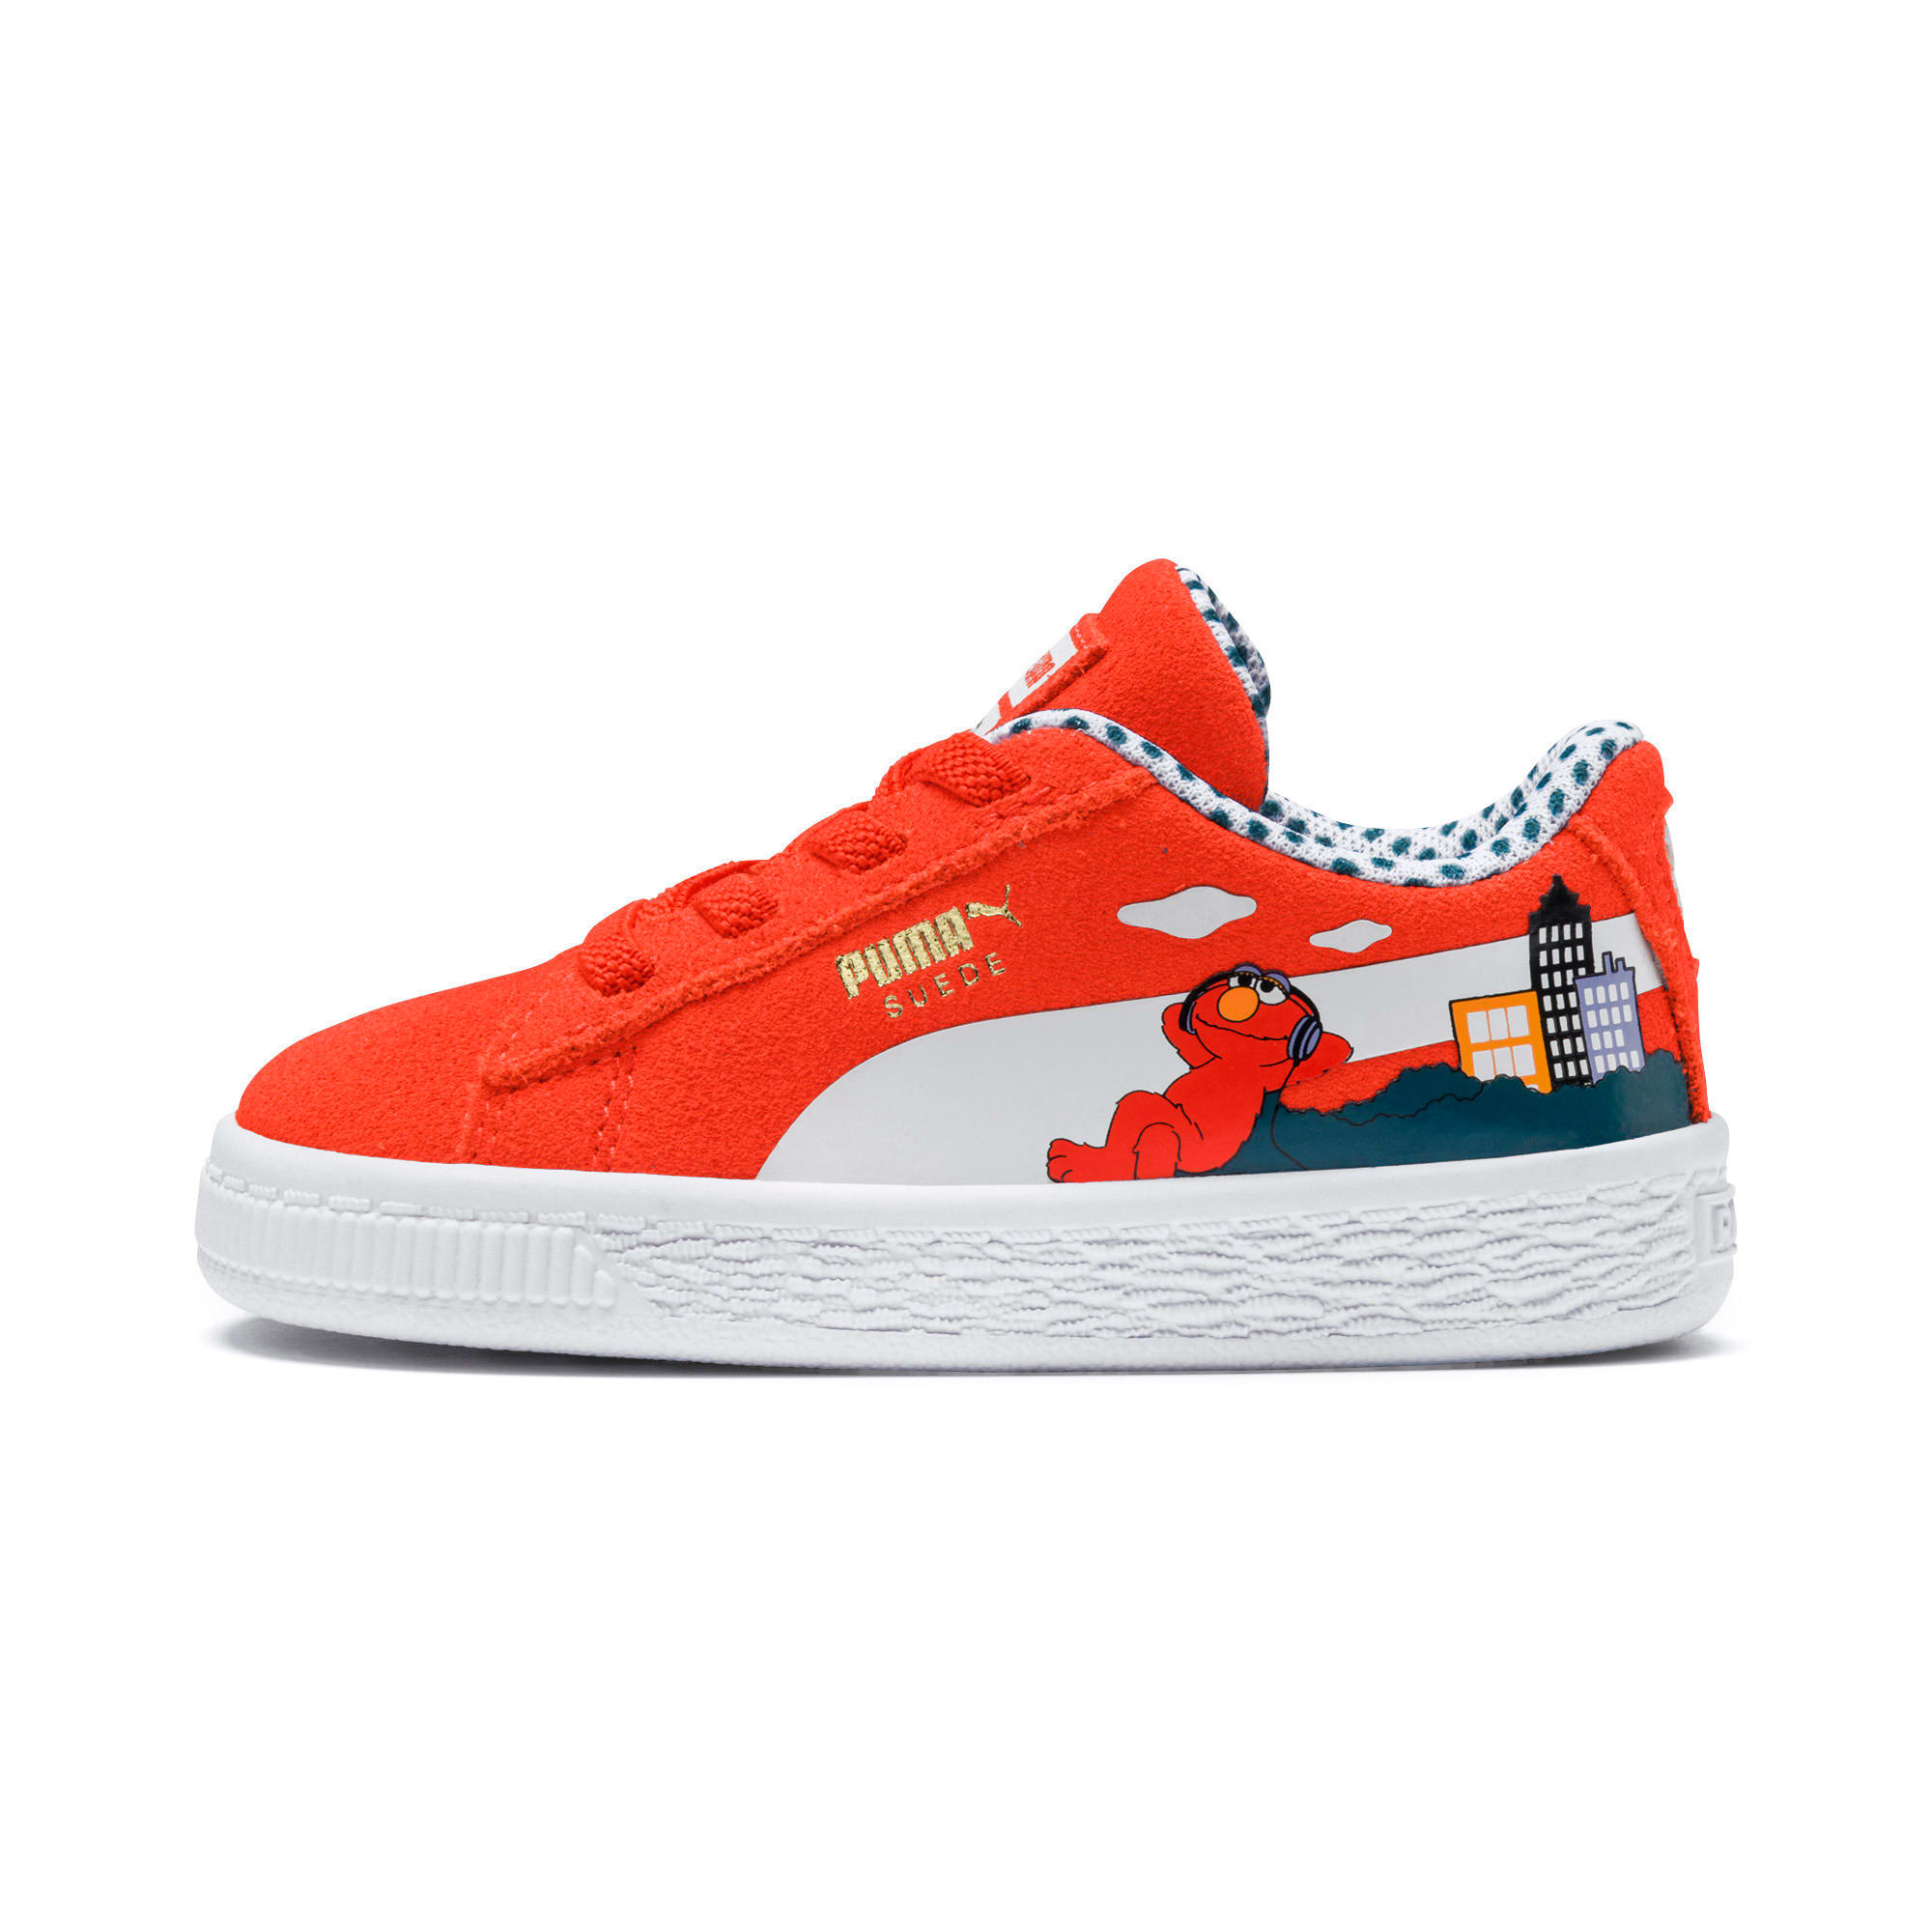 Thumbnail 1 of Sesame Street Suede Babies' Trainers, Cherry Tomato-Puma White, medium